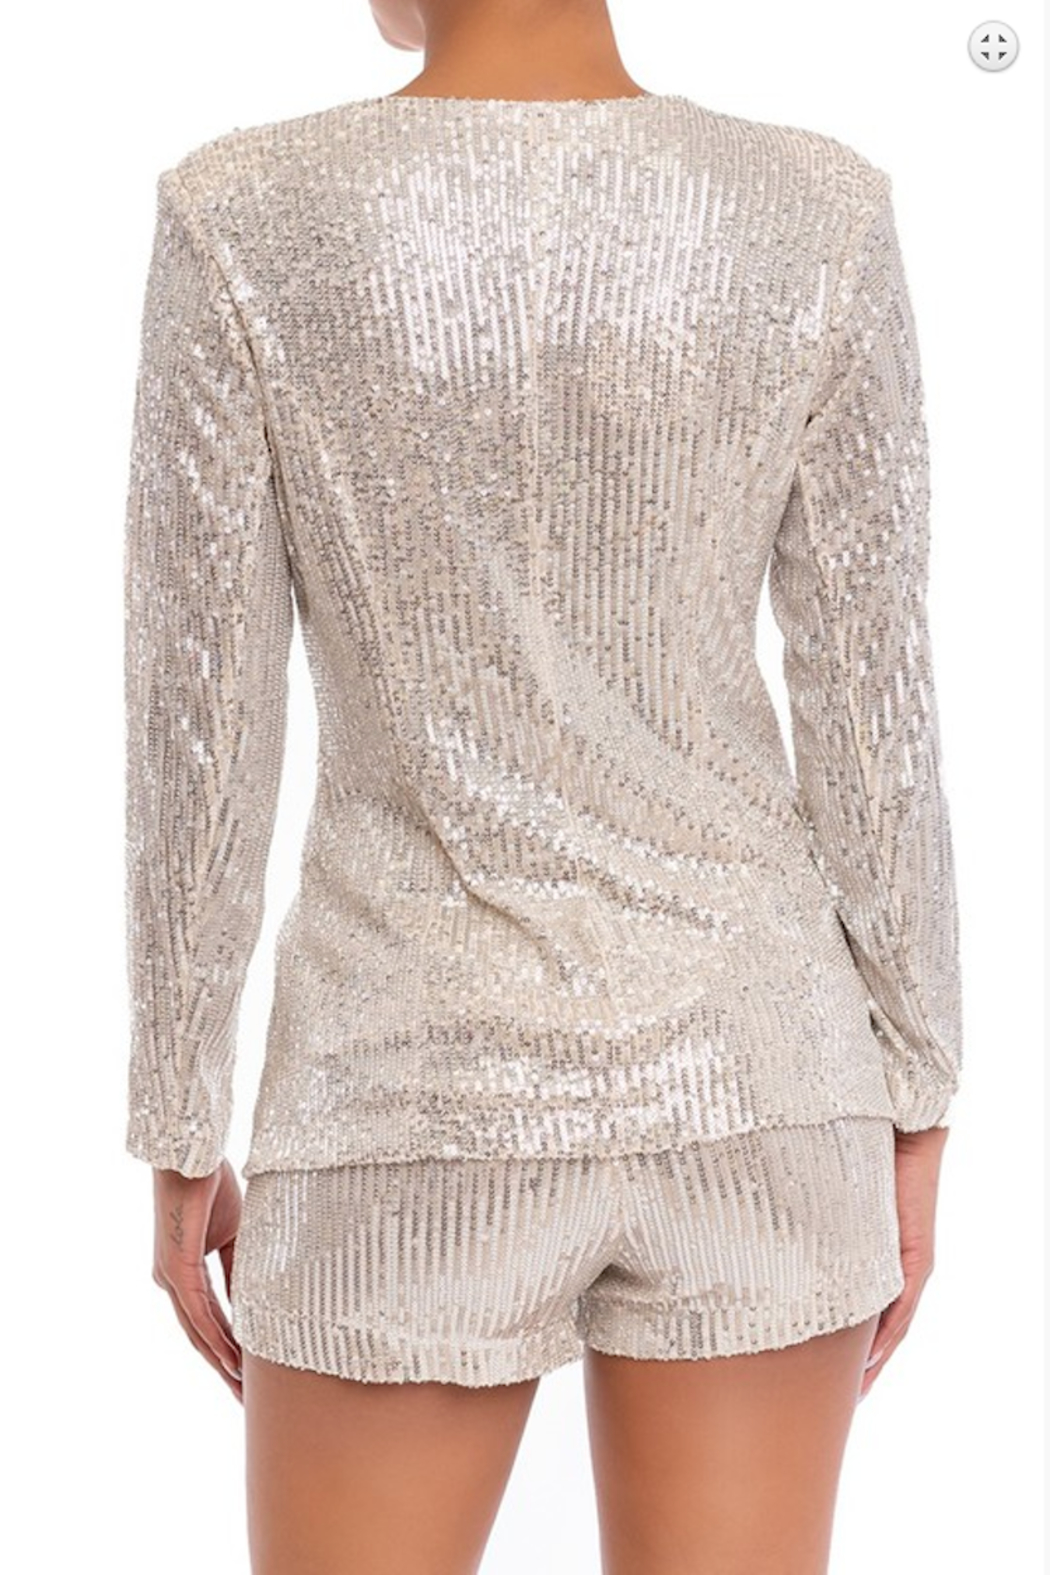 luxxel Sequin Short and Blazer Set - Front Full Image